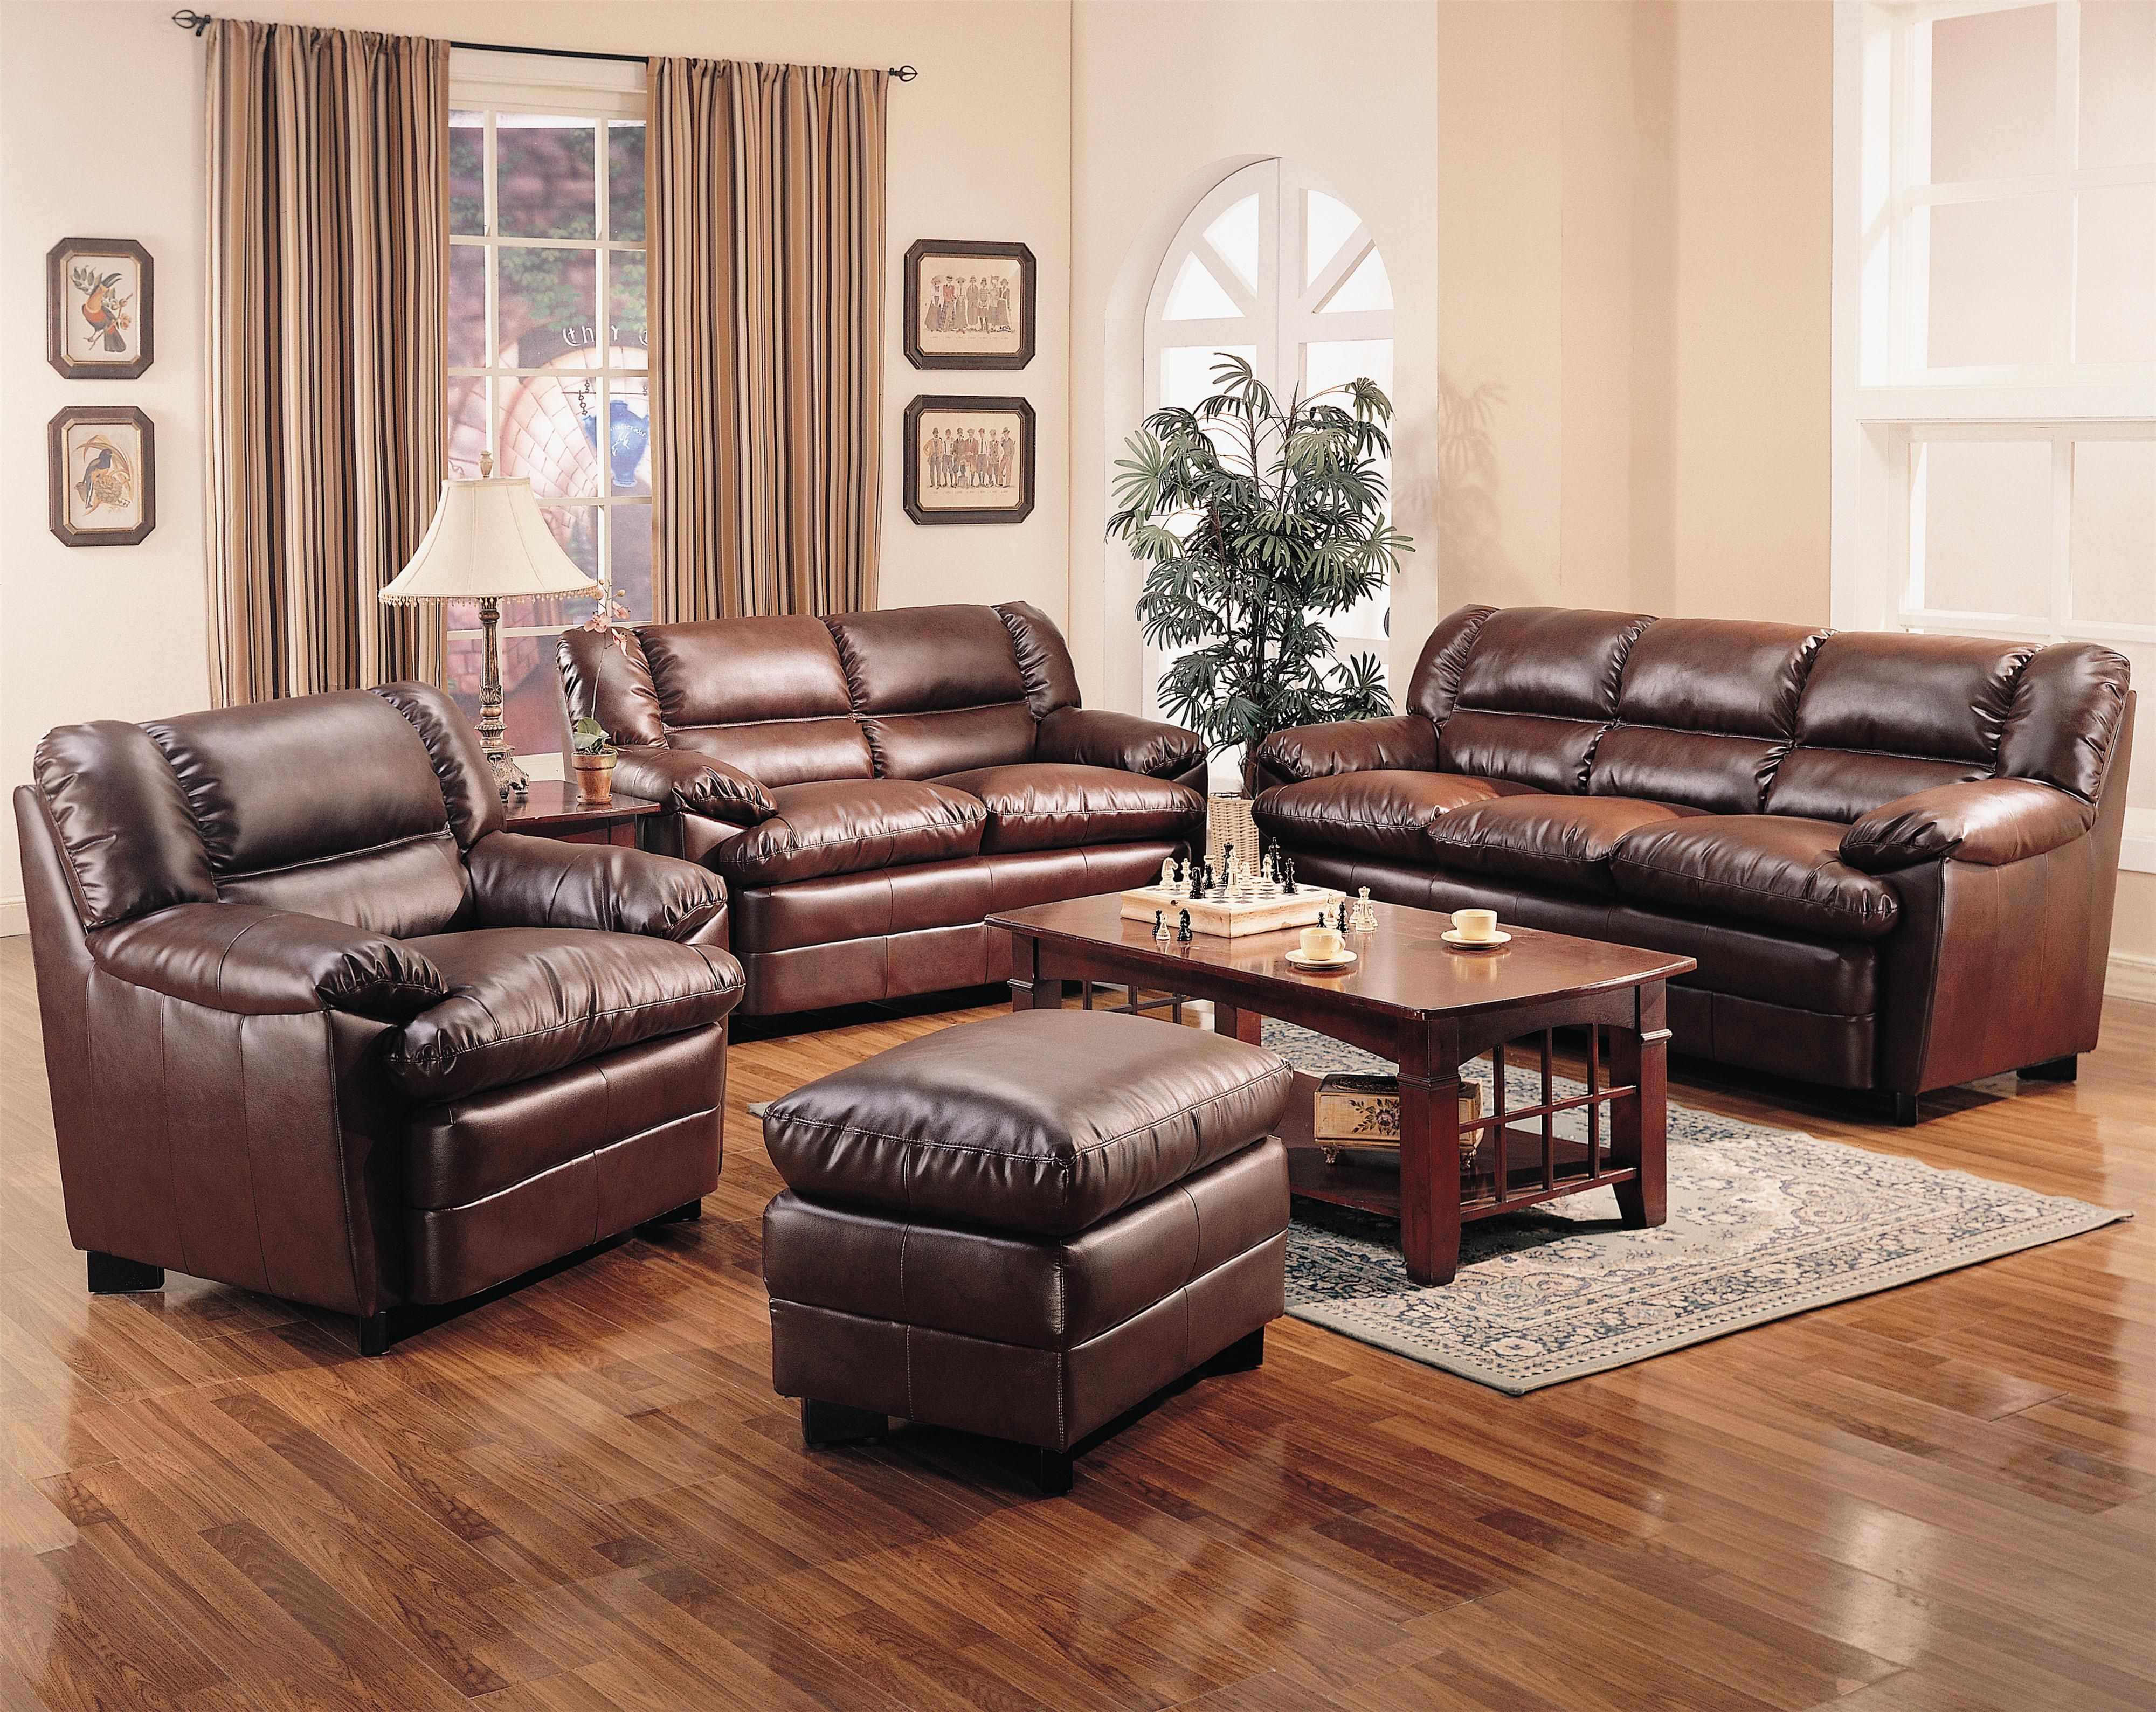 501911set Harper Overstuffed Leather Sofa With Pillow Arms Trade Furniture Barter Post